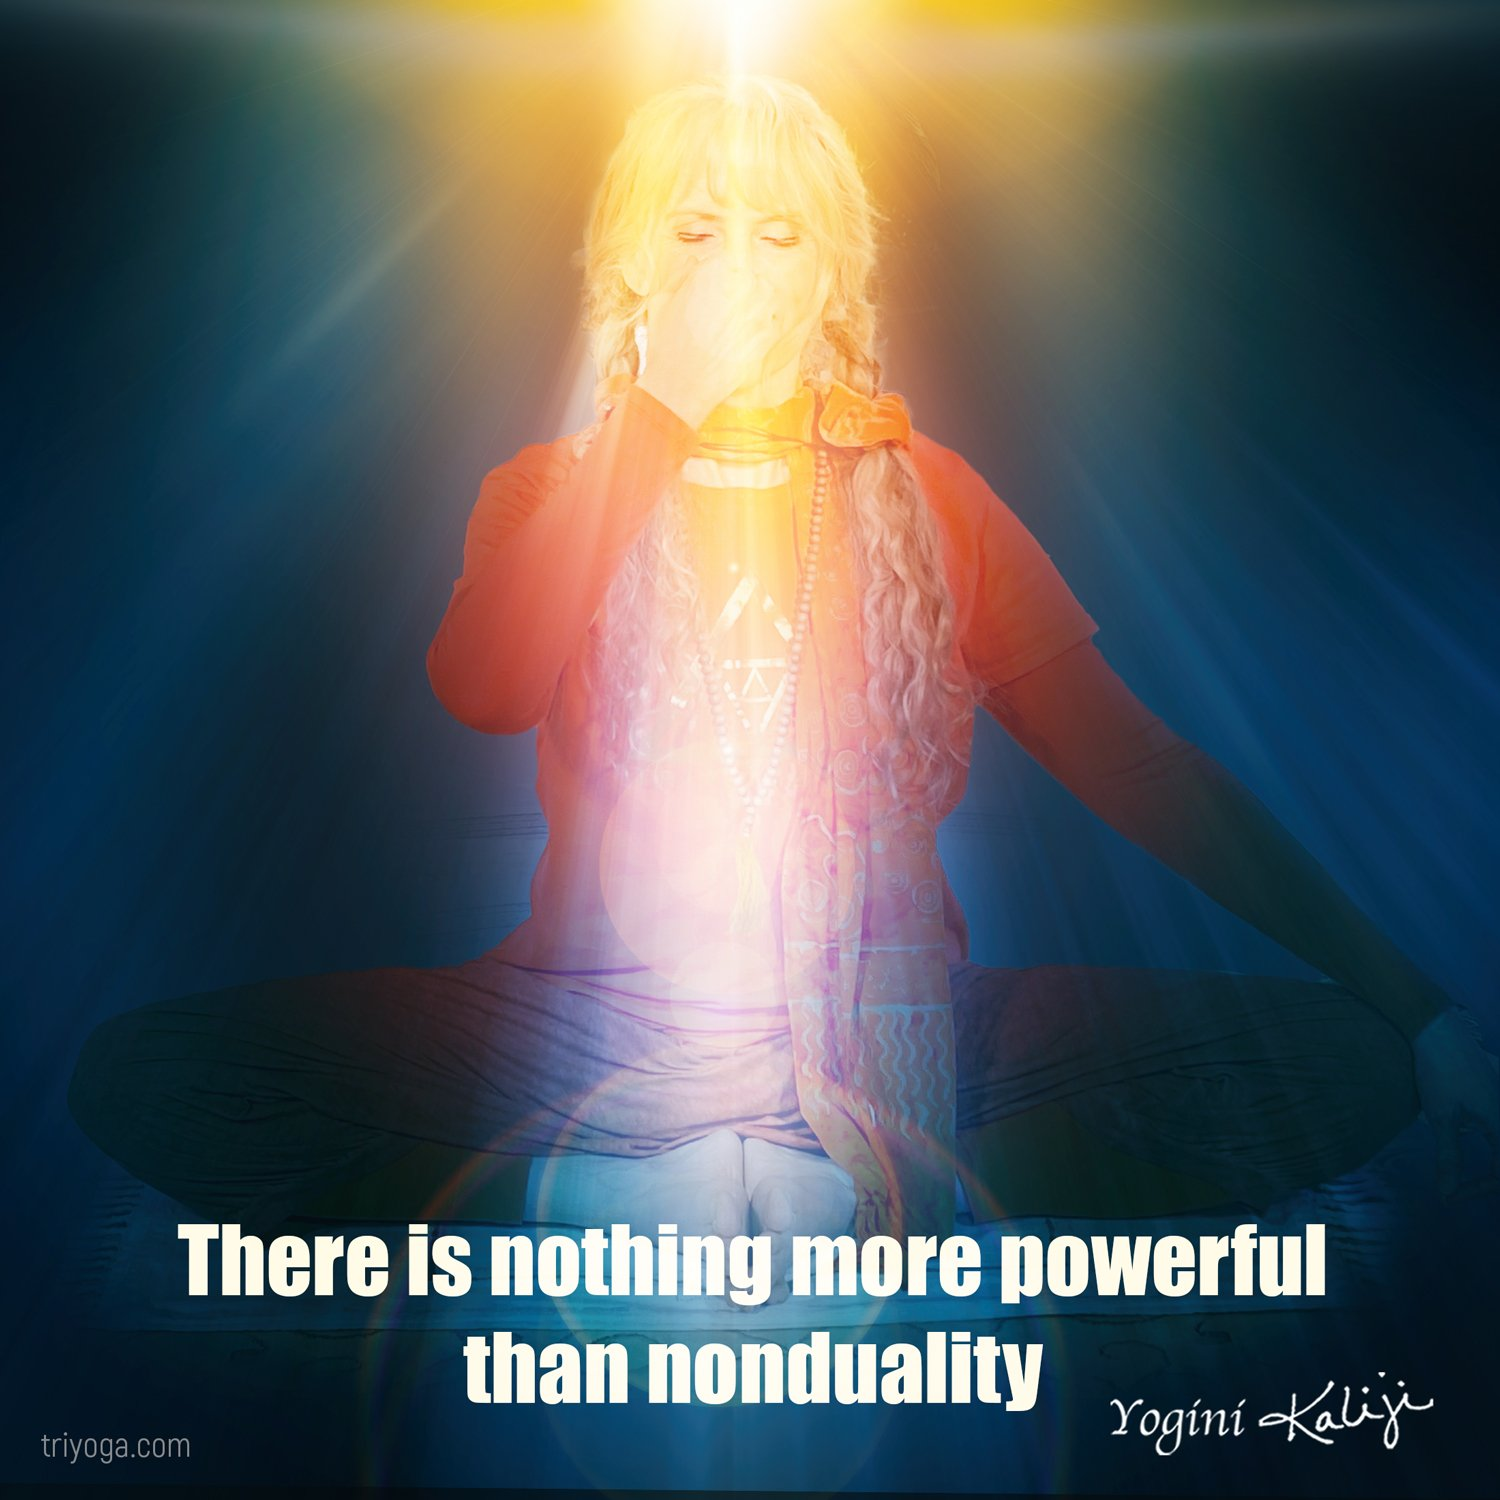 KJI_quote_nothing_more_powerful_than_nonduality_nov162020